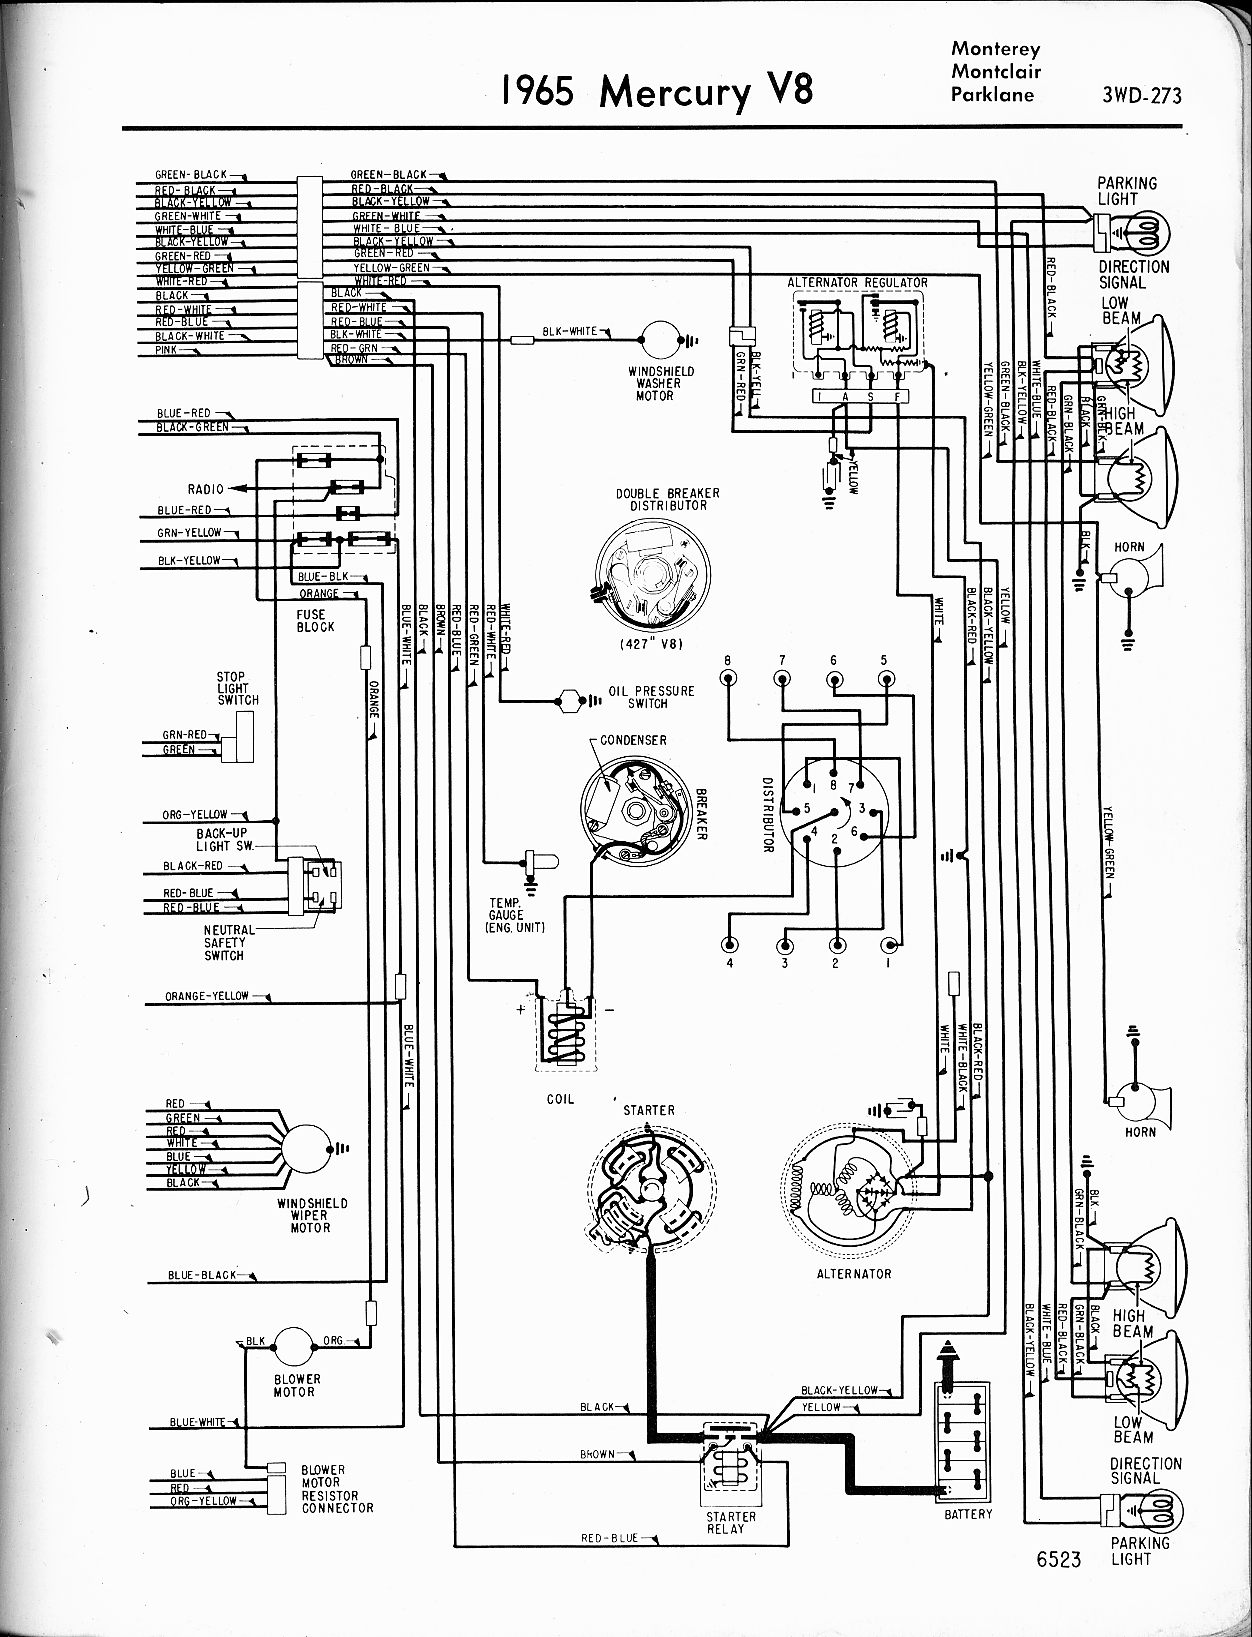 1970 Mercury Wiring Diagram Wire Center 500 Diagrams The Old Car Manual Project Rh Oldcarmanualproject Com 1997 Outboard